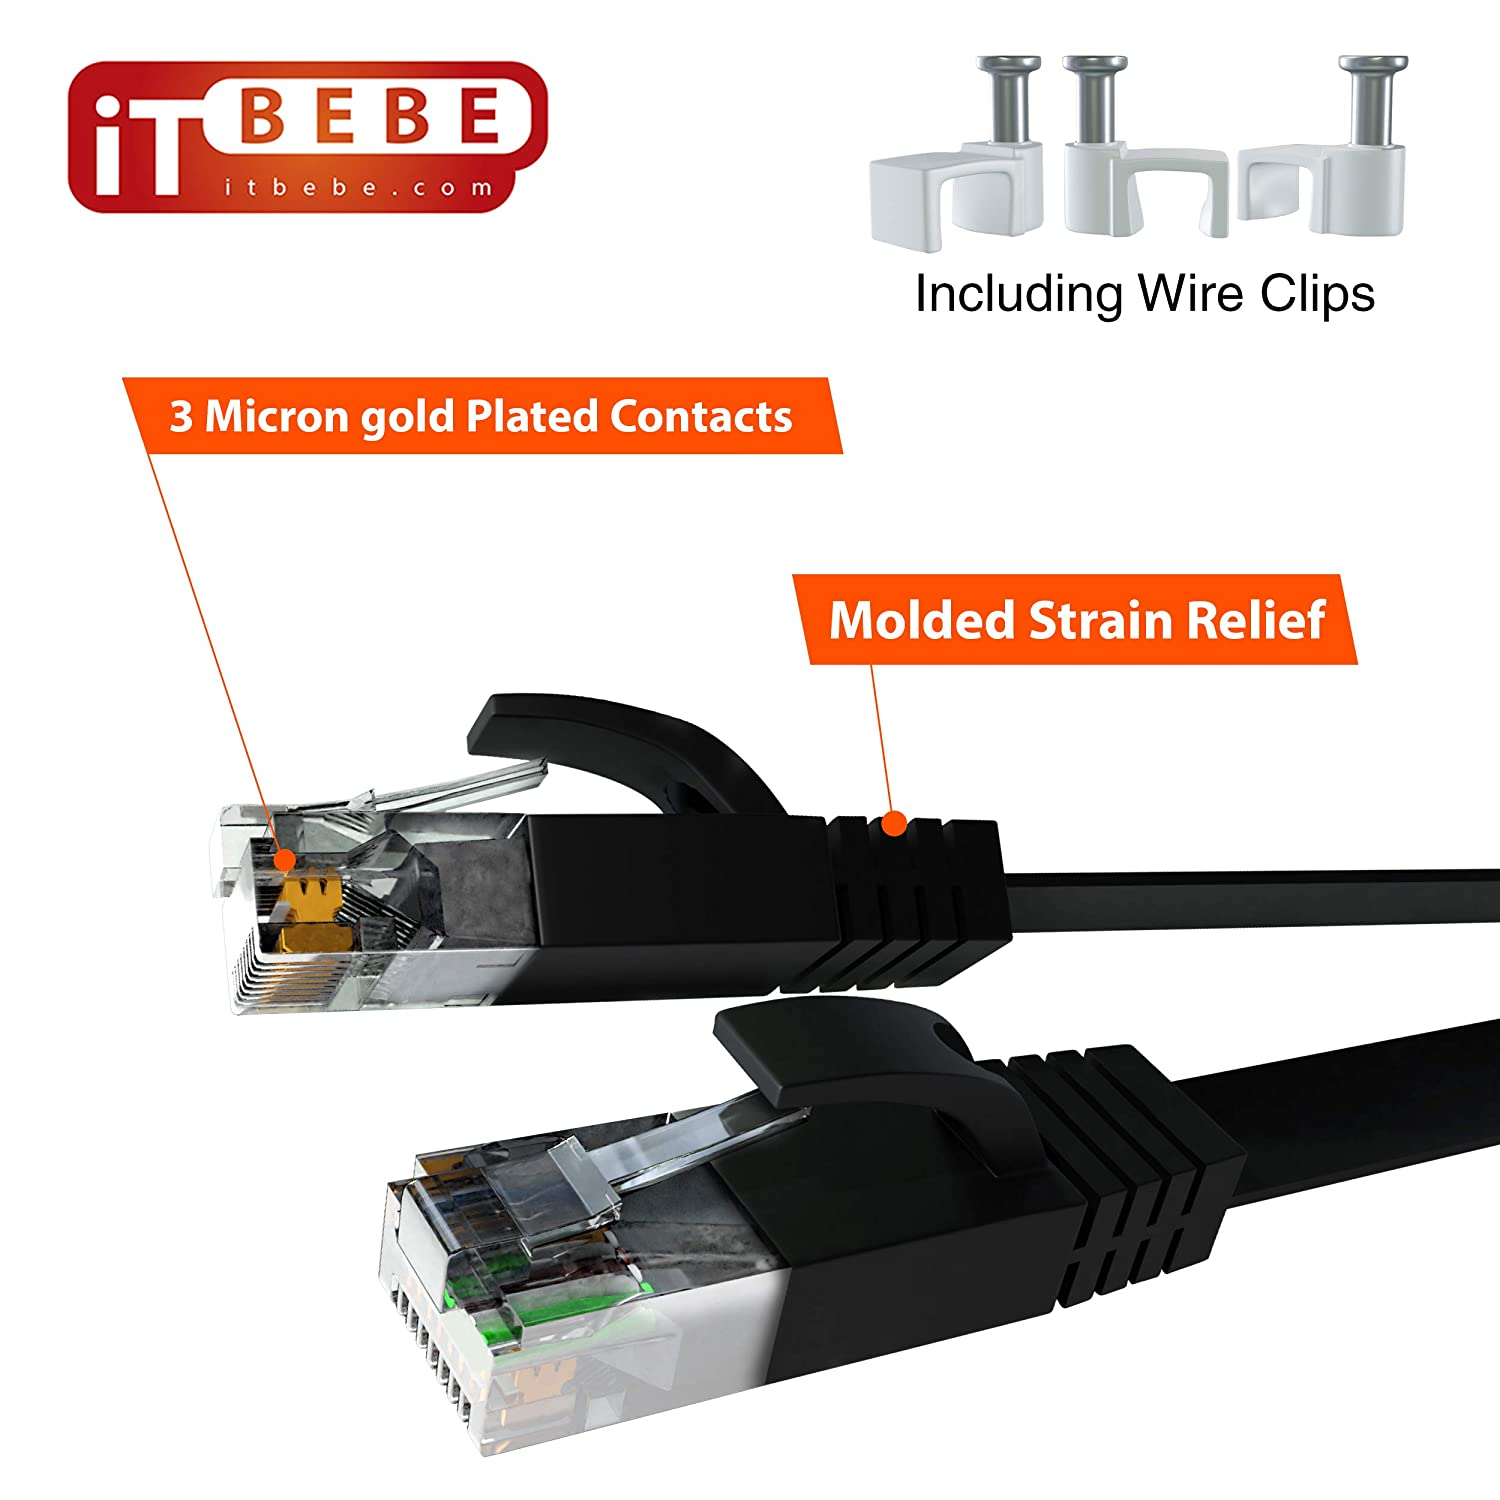 Black Flat Internet Cord with 3 Micron Gold-Plated RJ45 Connectors and Snag-Proof Clips Lightning Fast Speeds and Superior Signal Strength ITBEBE Cat6 Ethernet Cable 50 ft